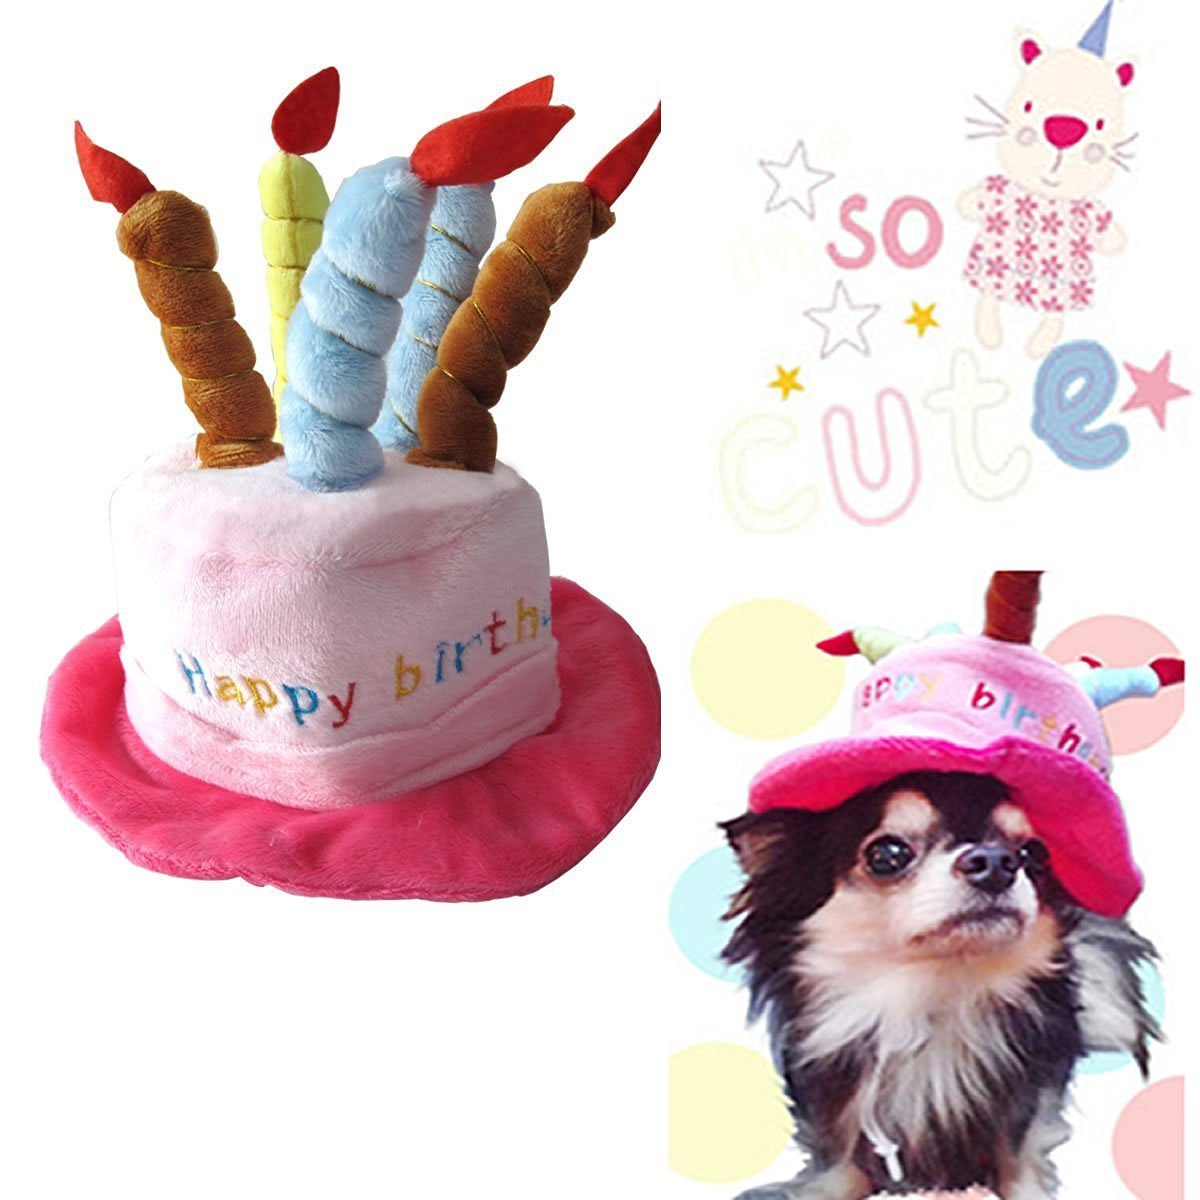 Universal Dog Birthday Hats Gift With Cake and Candles for Puppy Small Cats Dogs, Pink